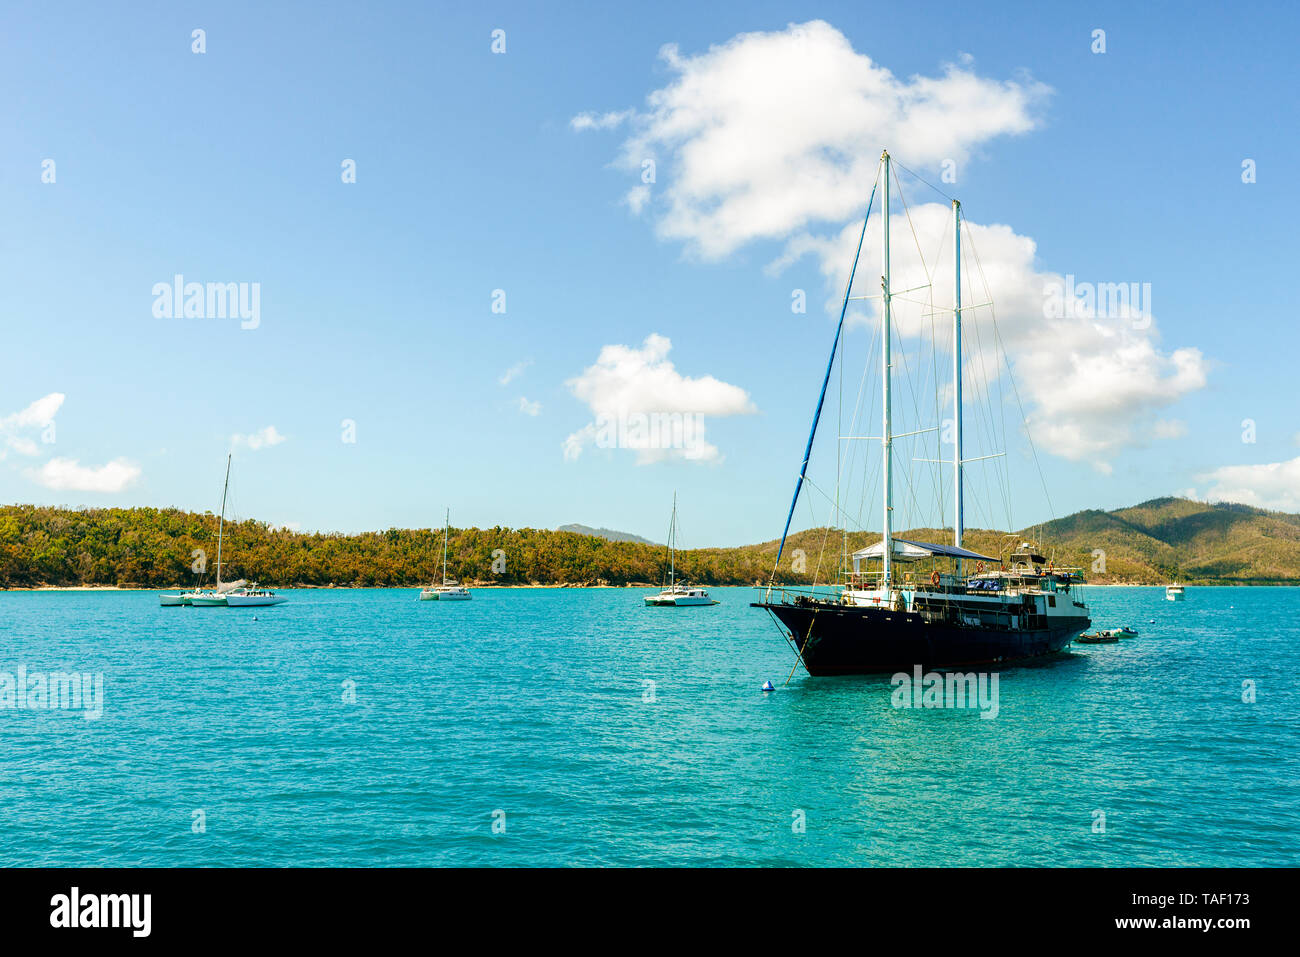 Australia, Queensland, Whitsunday Islands, boats and ship in water - Stock Image